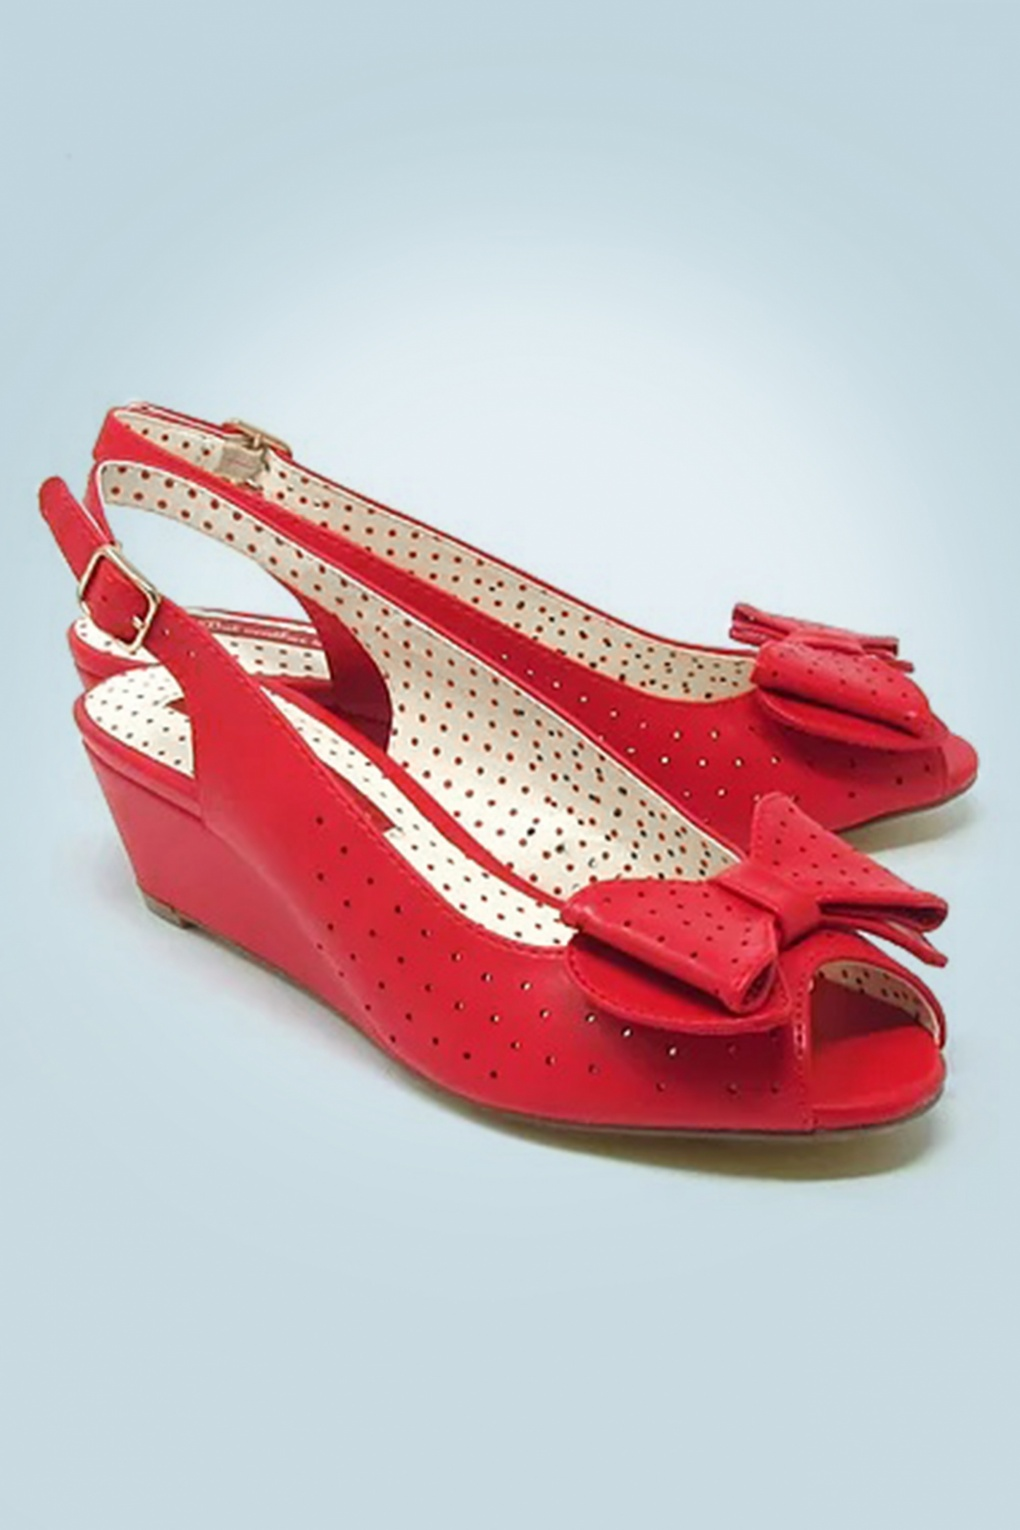 1940s Dresses and Clothing UK | 40s Shoes UK 50s Jasmine Wedge Peeptoes in Red �66.43 AT vintagedancer.com